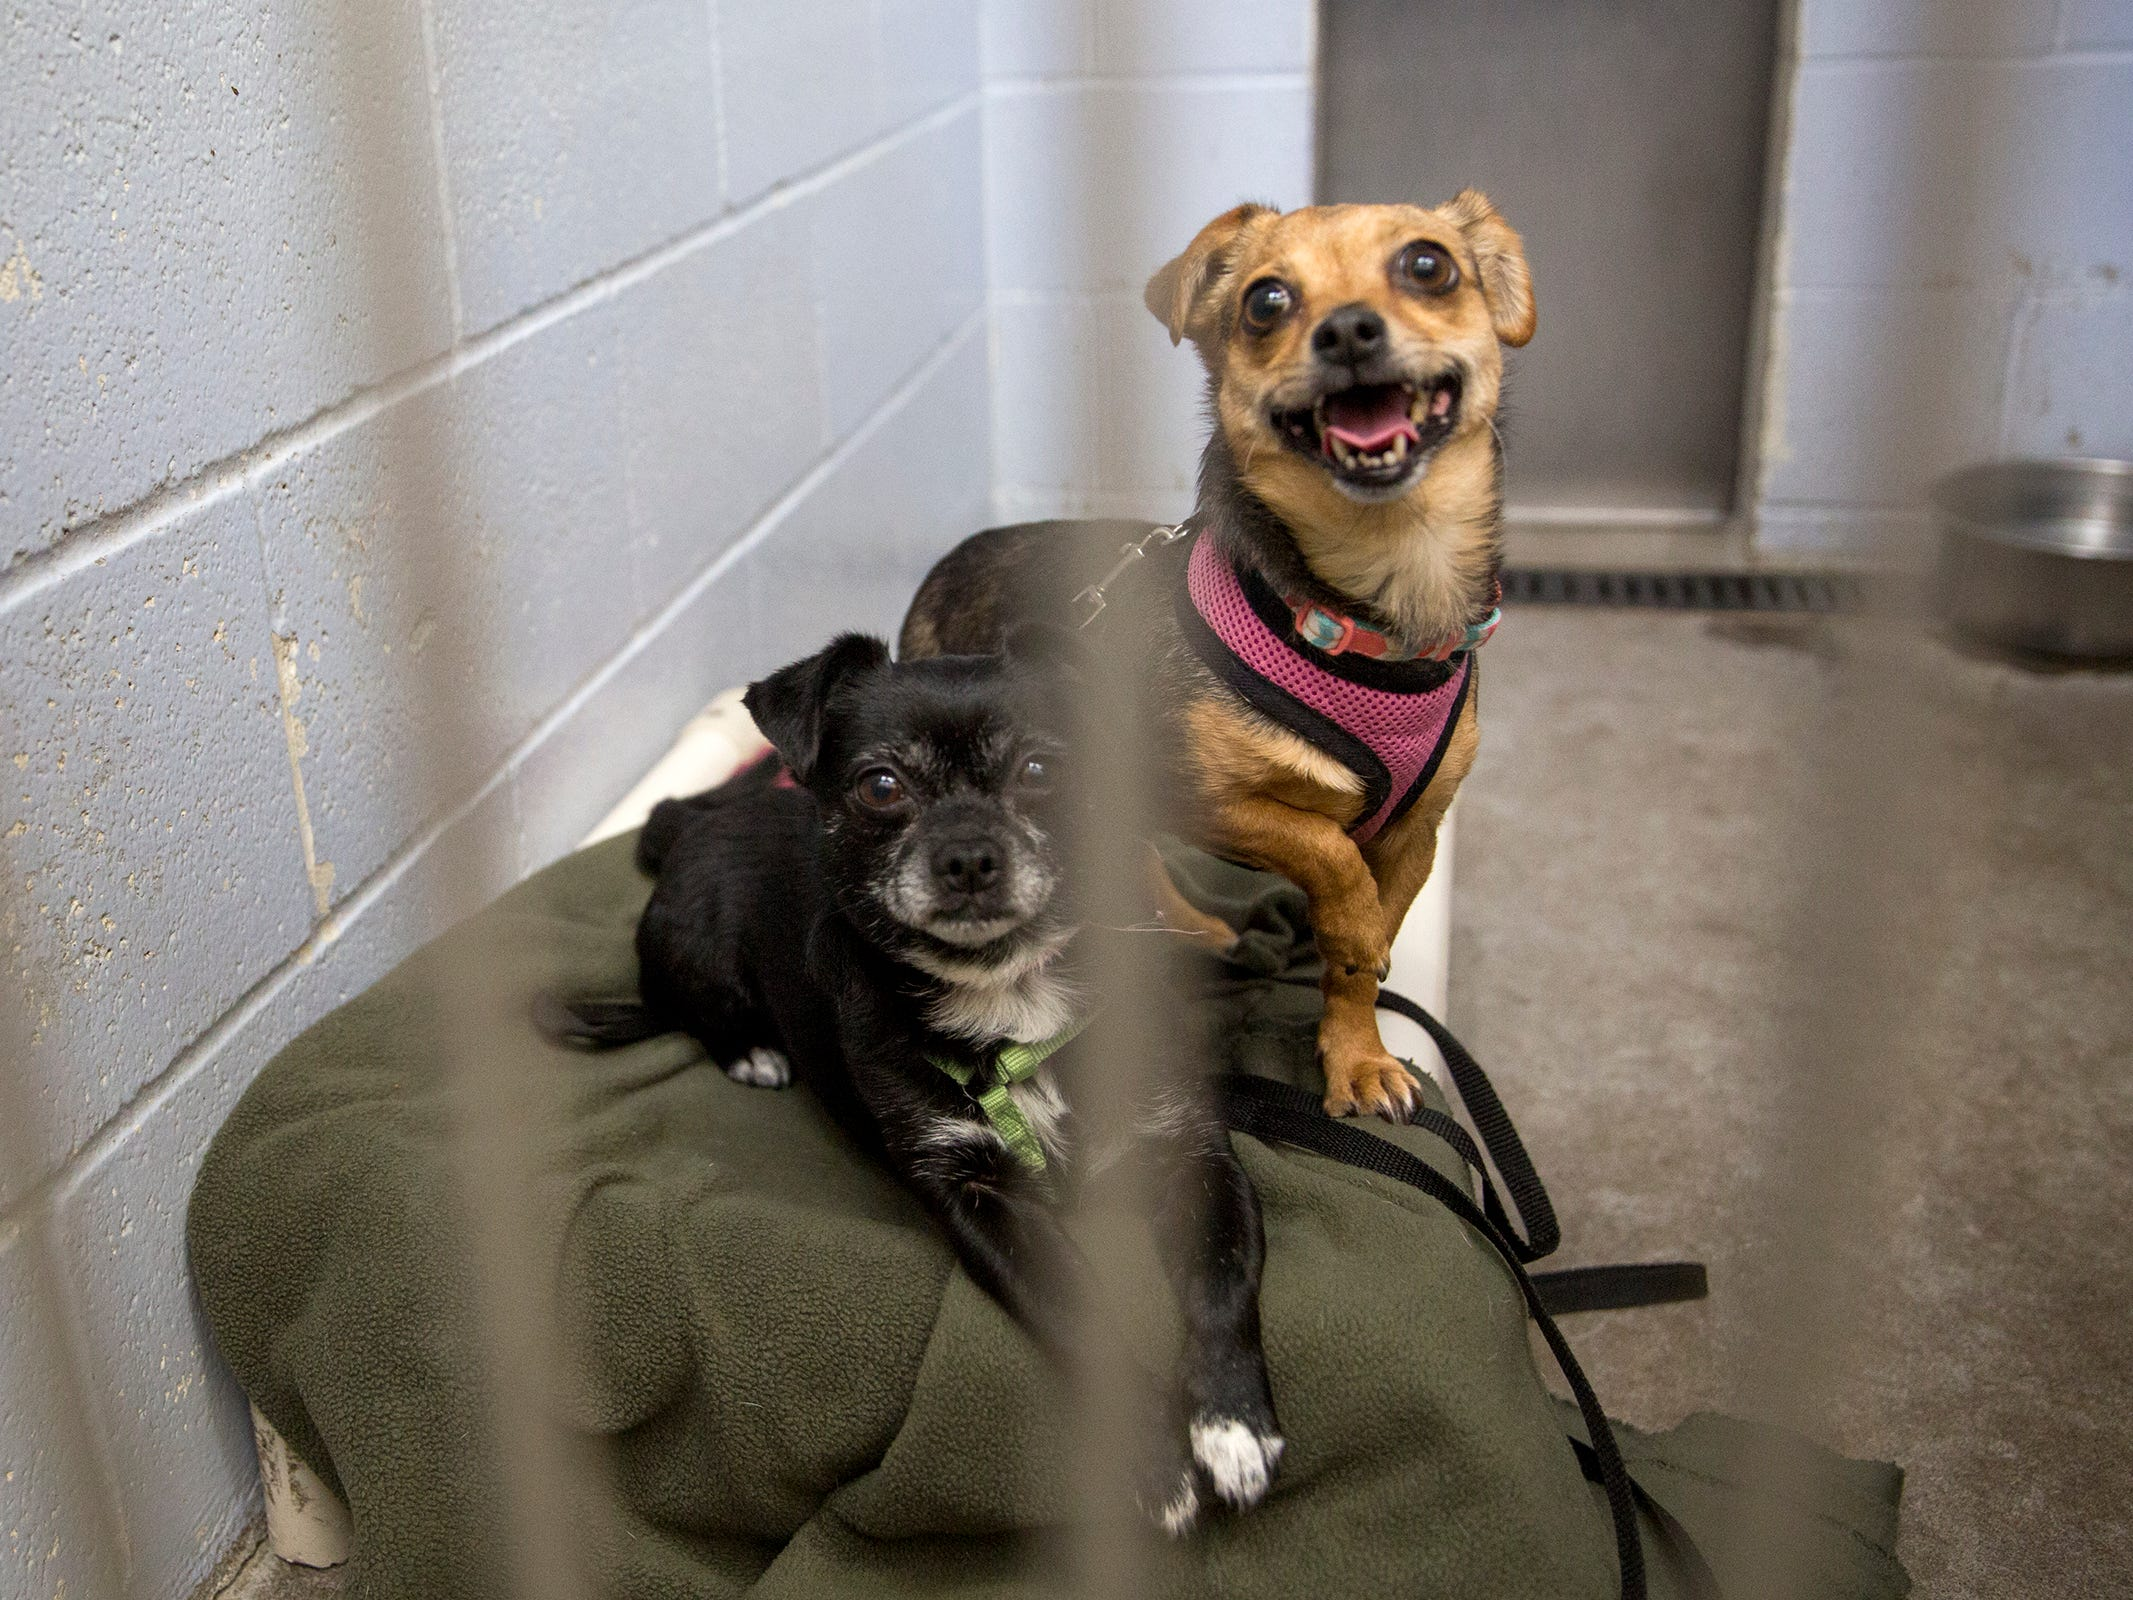 Two dogs wait to be adopted at the Willamette Humane Society in Salem on Monday, Dec. 31, 2018.